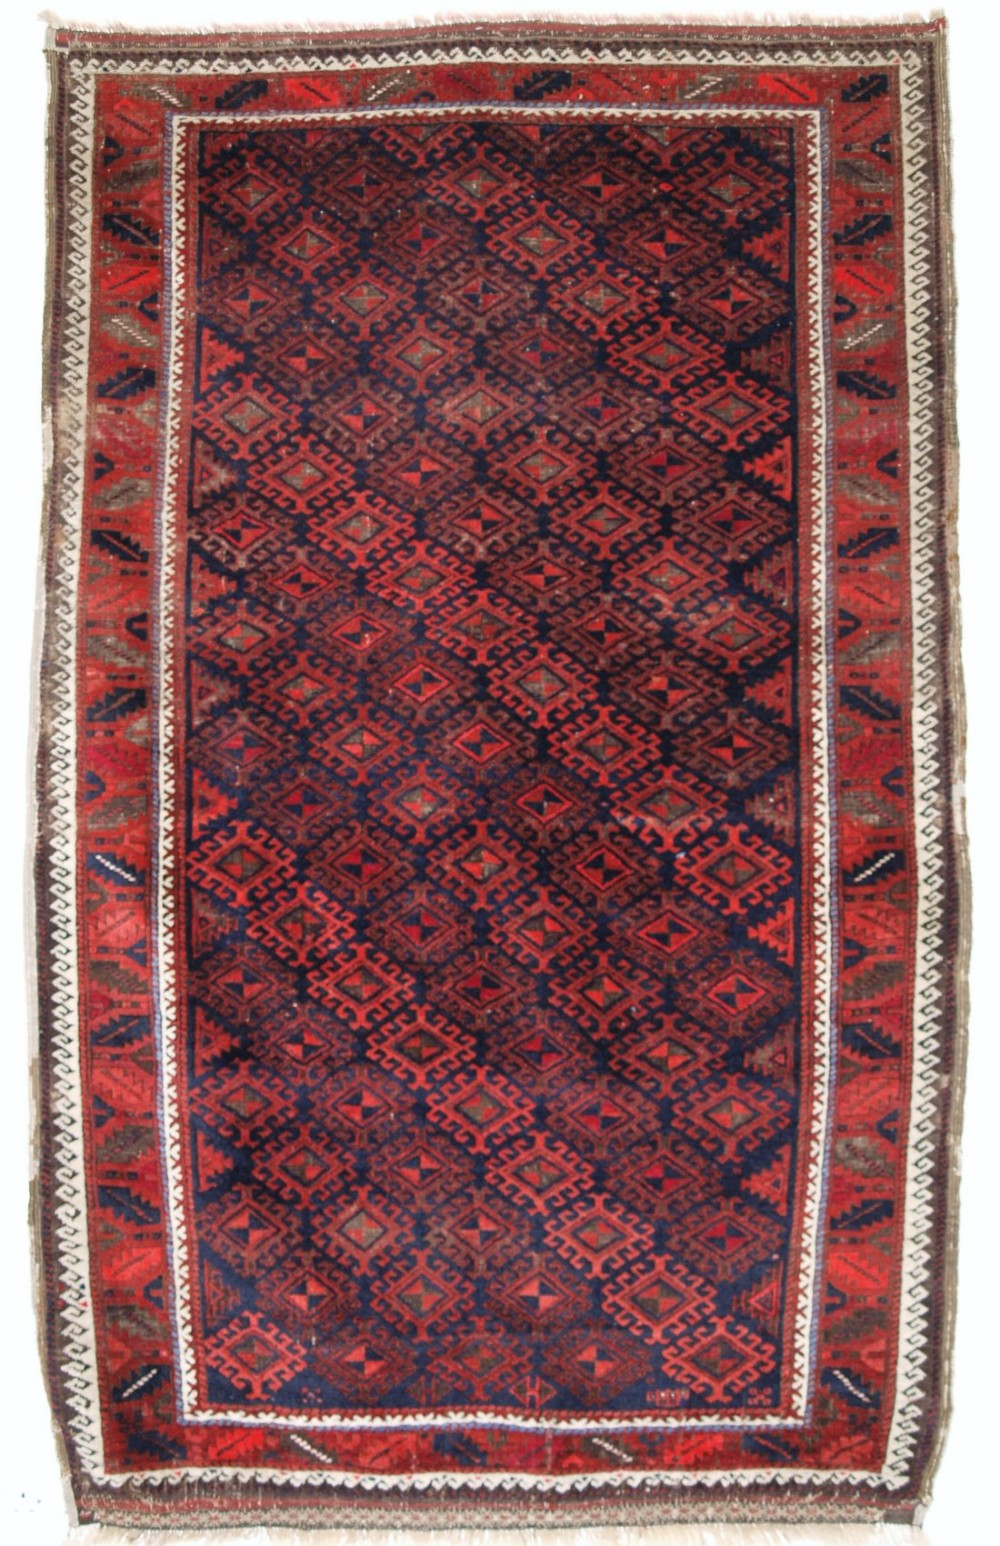 antique baluch rug of larger than normal size latch hook medallion lattice design circa 1880